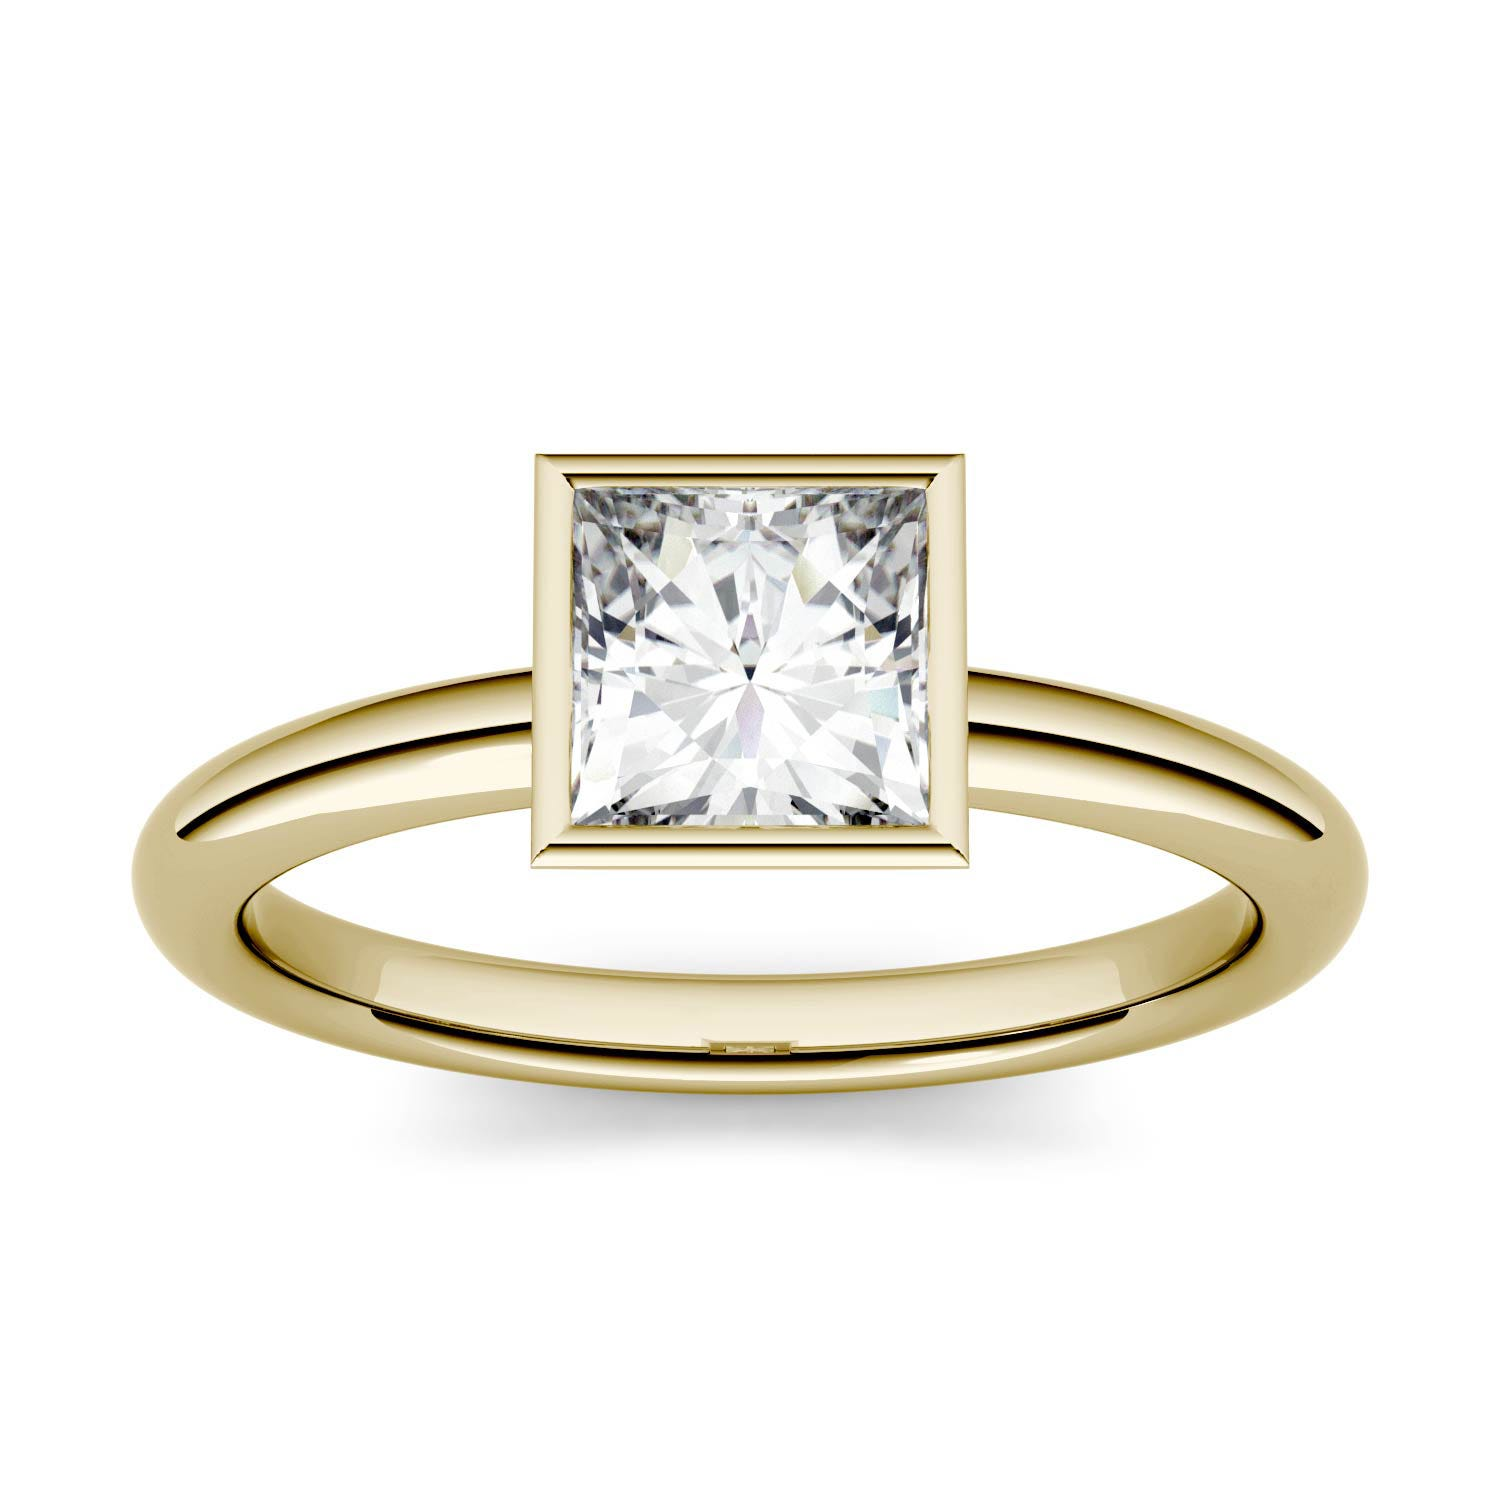 Square 0.91cttw DEW Moissanite Bezel Set Solitaire Engagement Ring in 14K Yellow Gold 500121